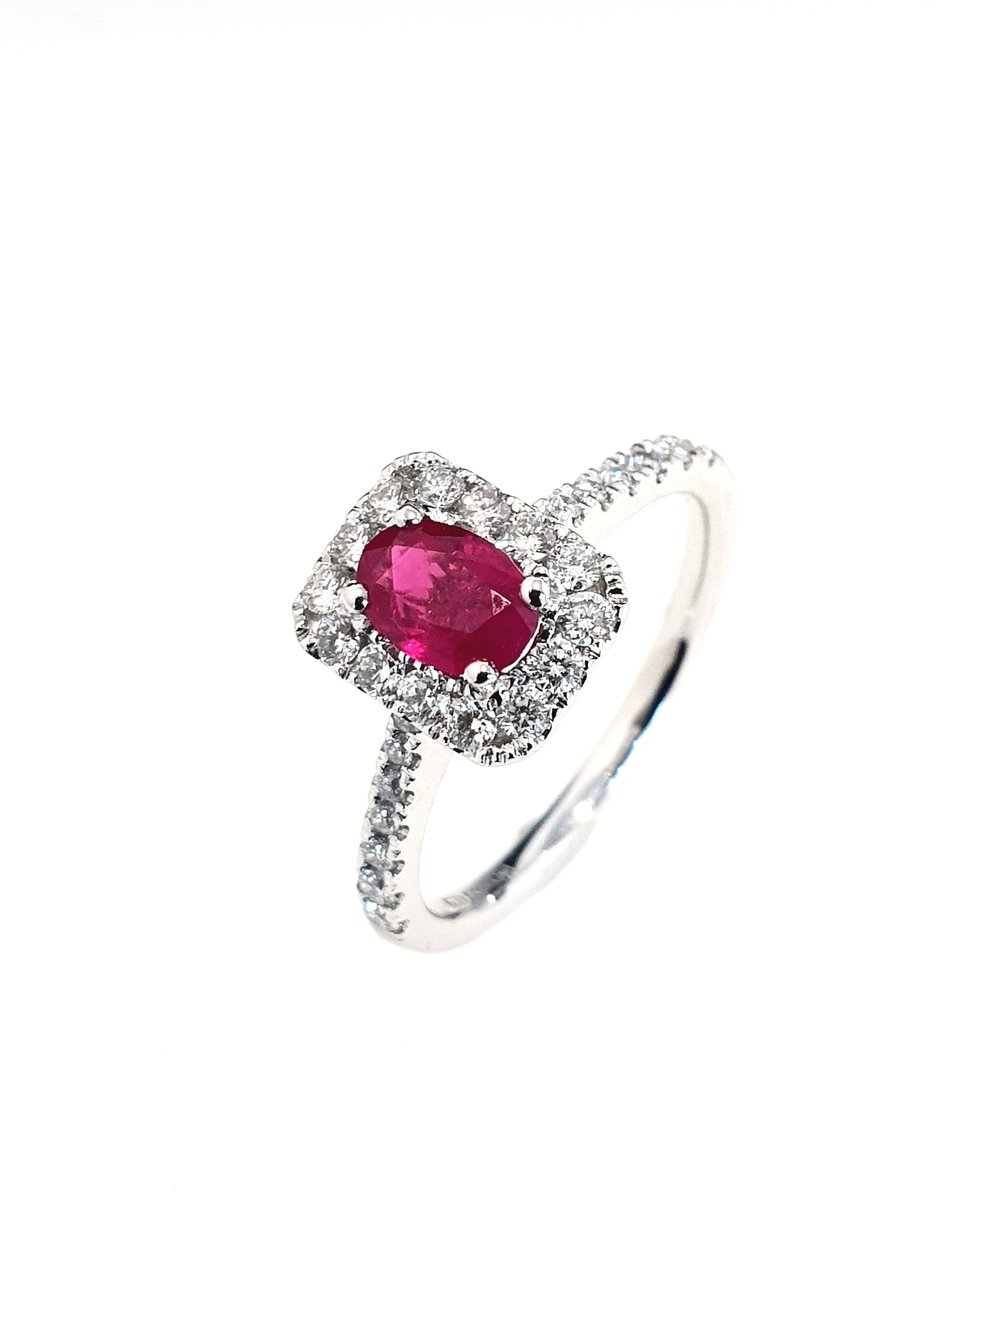 18ct White Gold Ruby(.55ct) & Diamond Ring  Diamond: .37ct, G, Si1  Stock Code: N8950  £1650